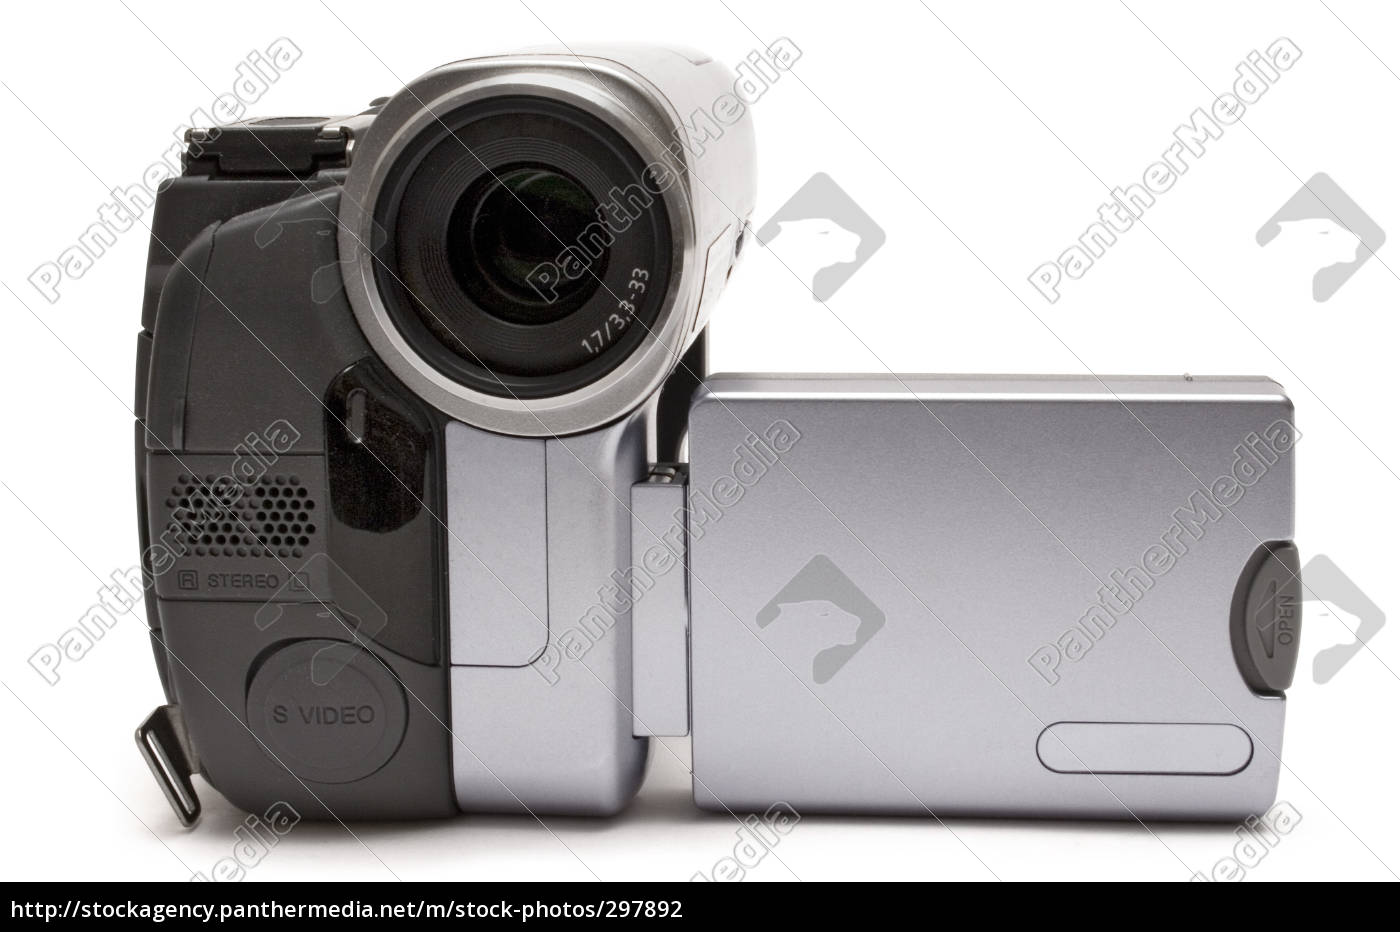 consumer, camcorder, frontal - 297892